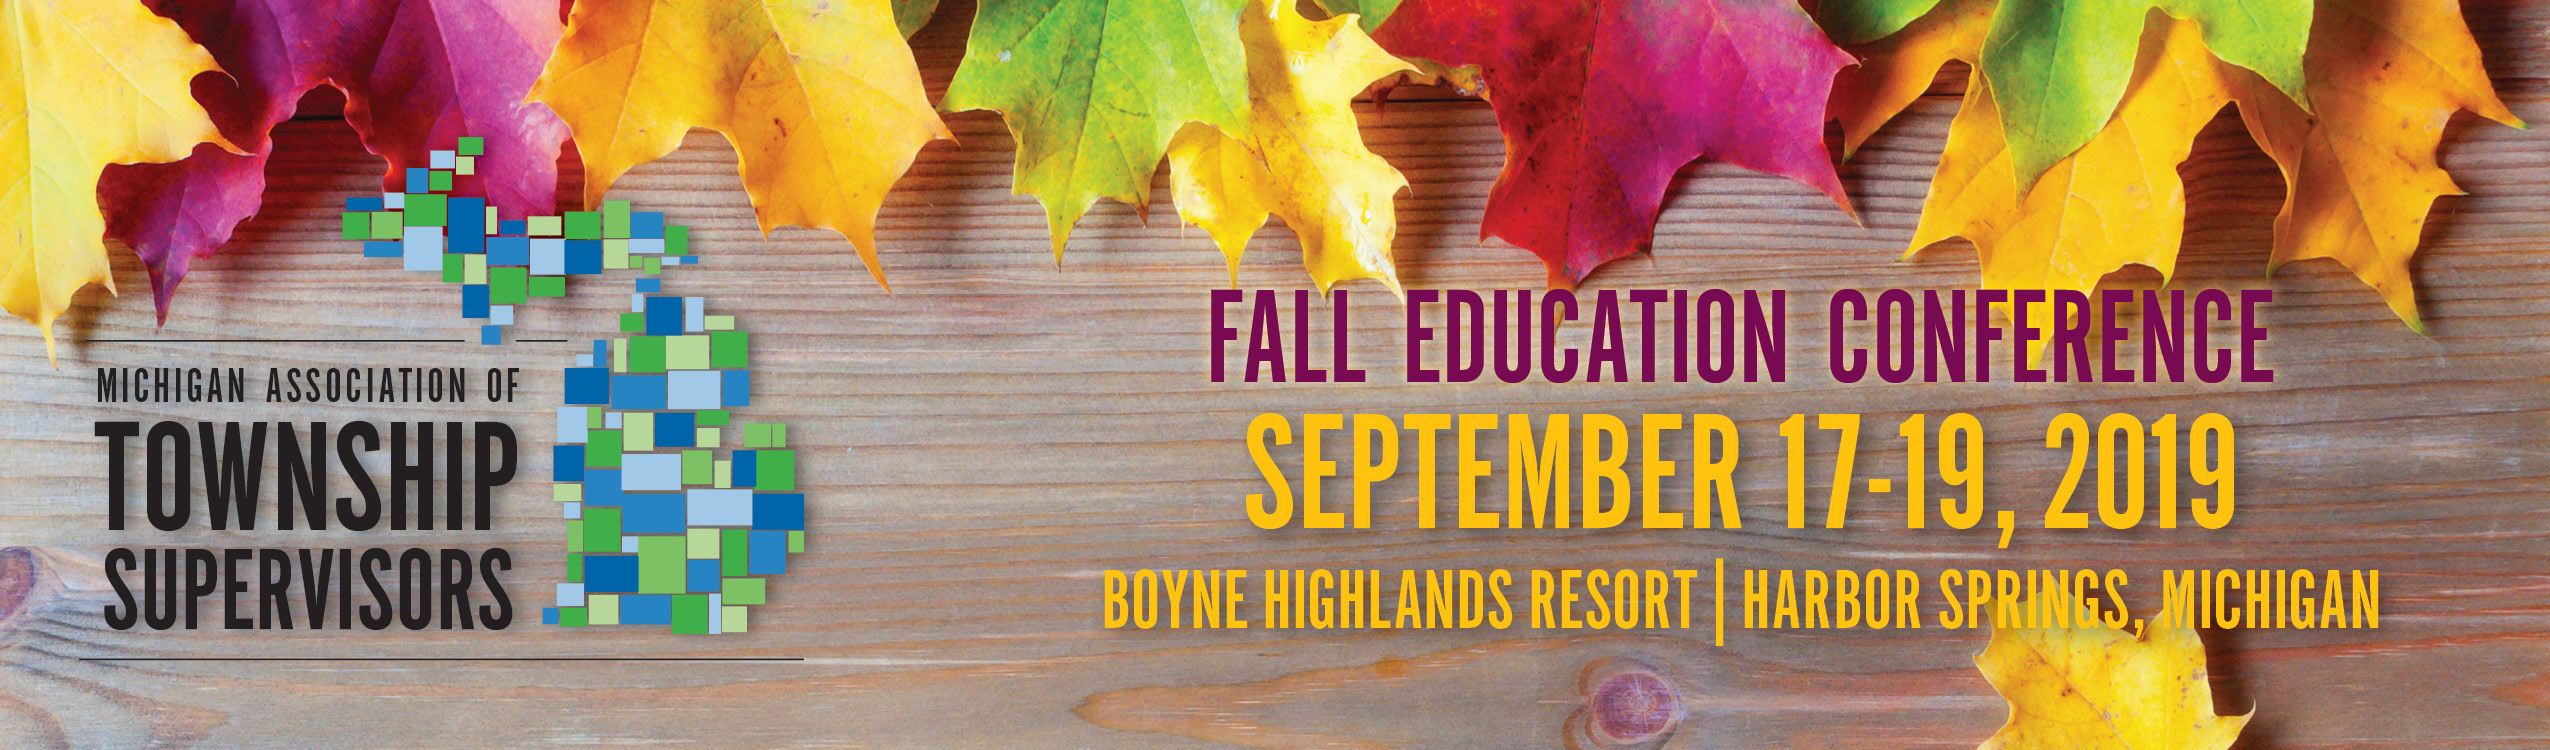 Fall Education Conference